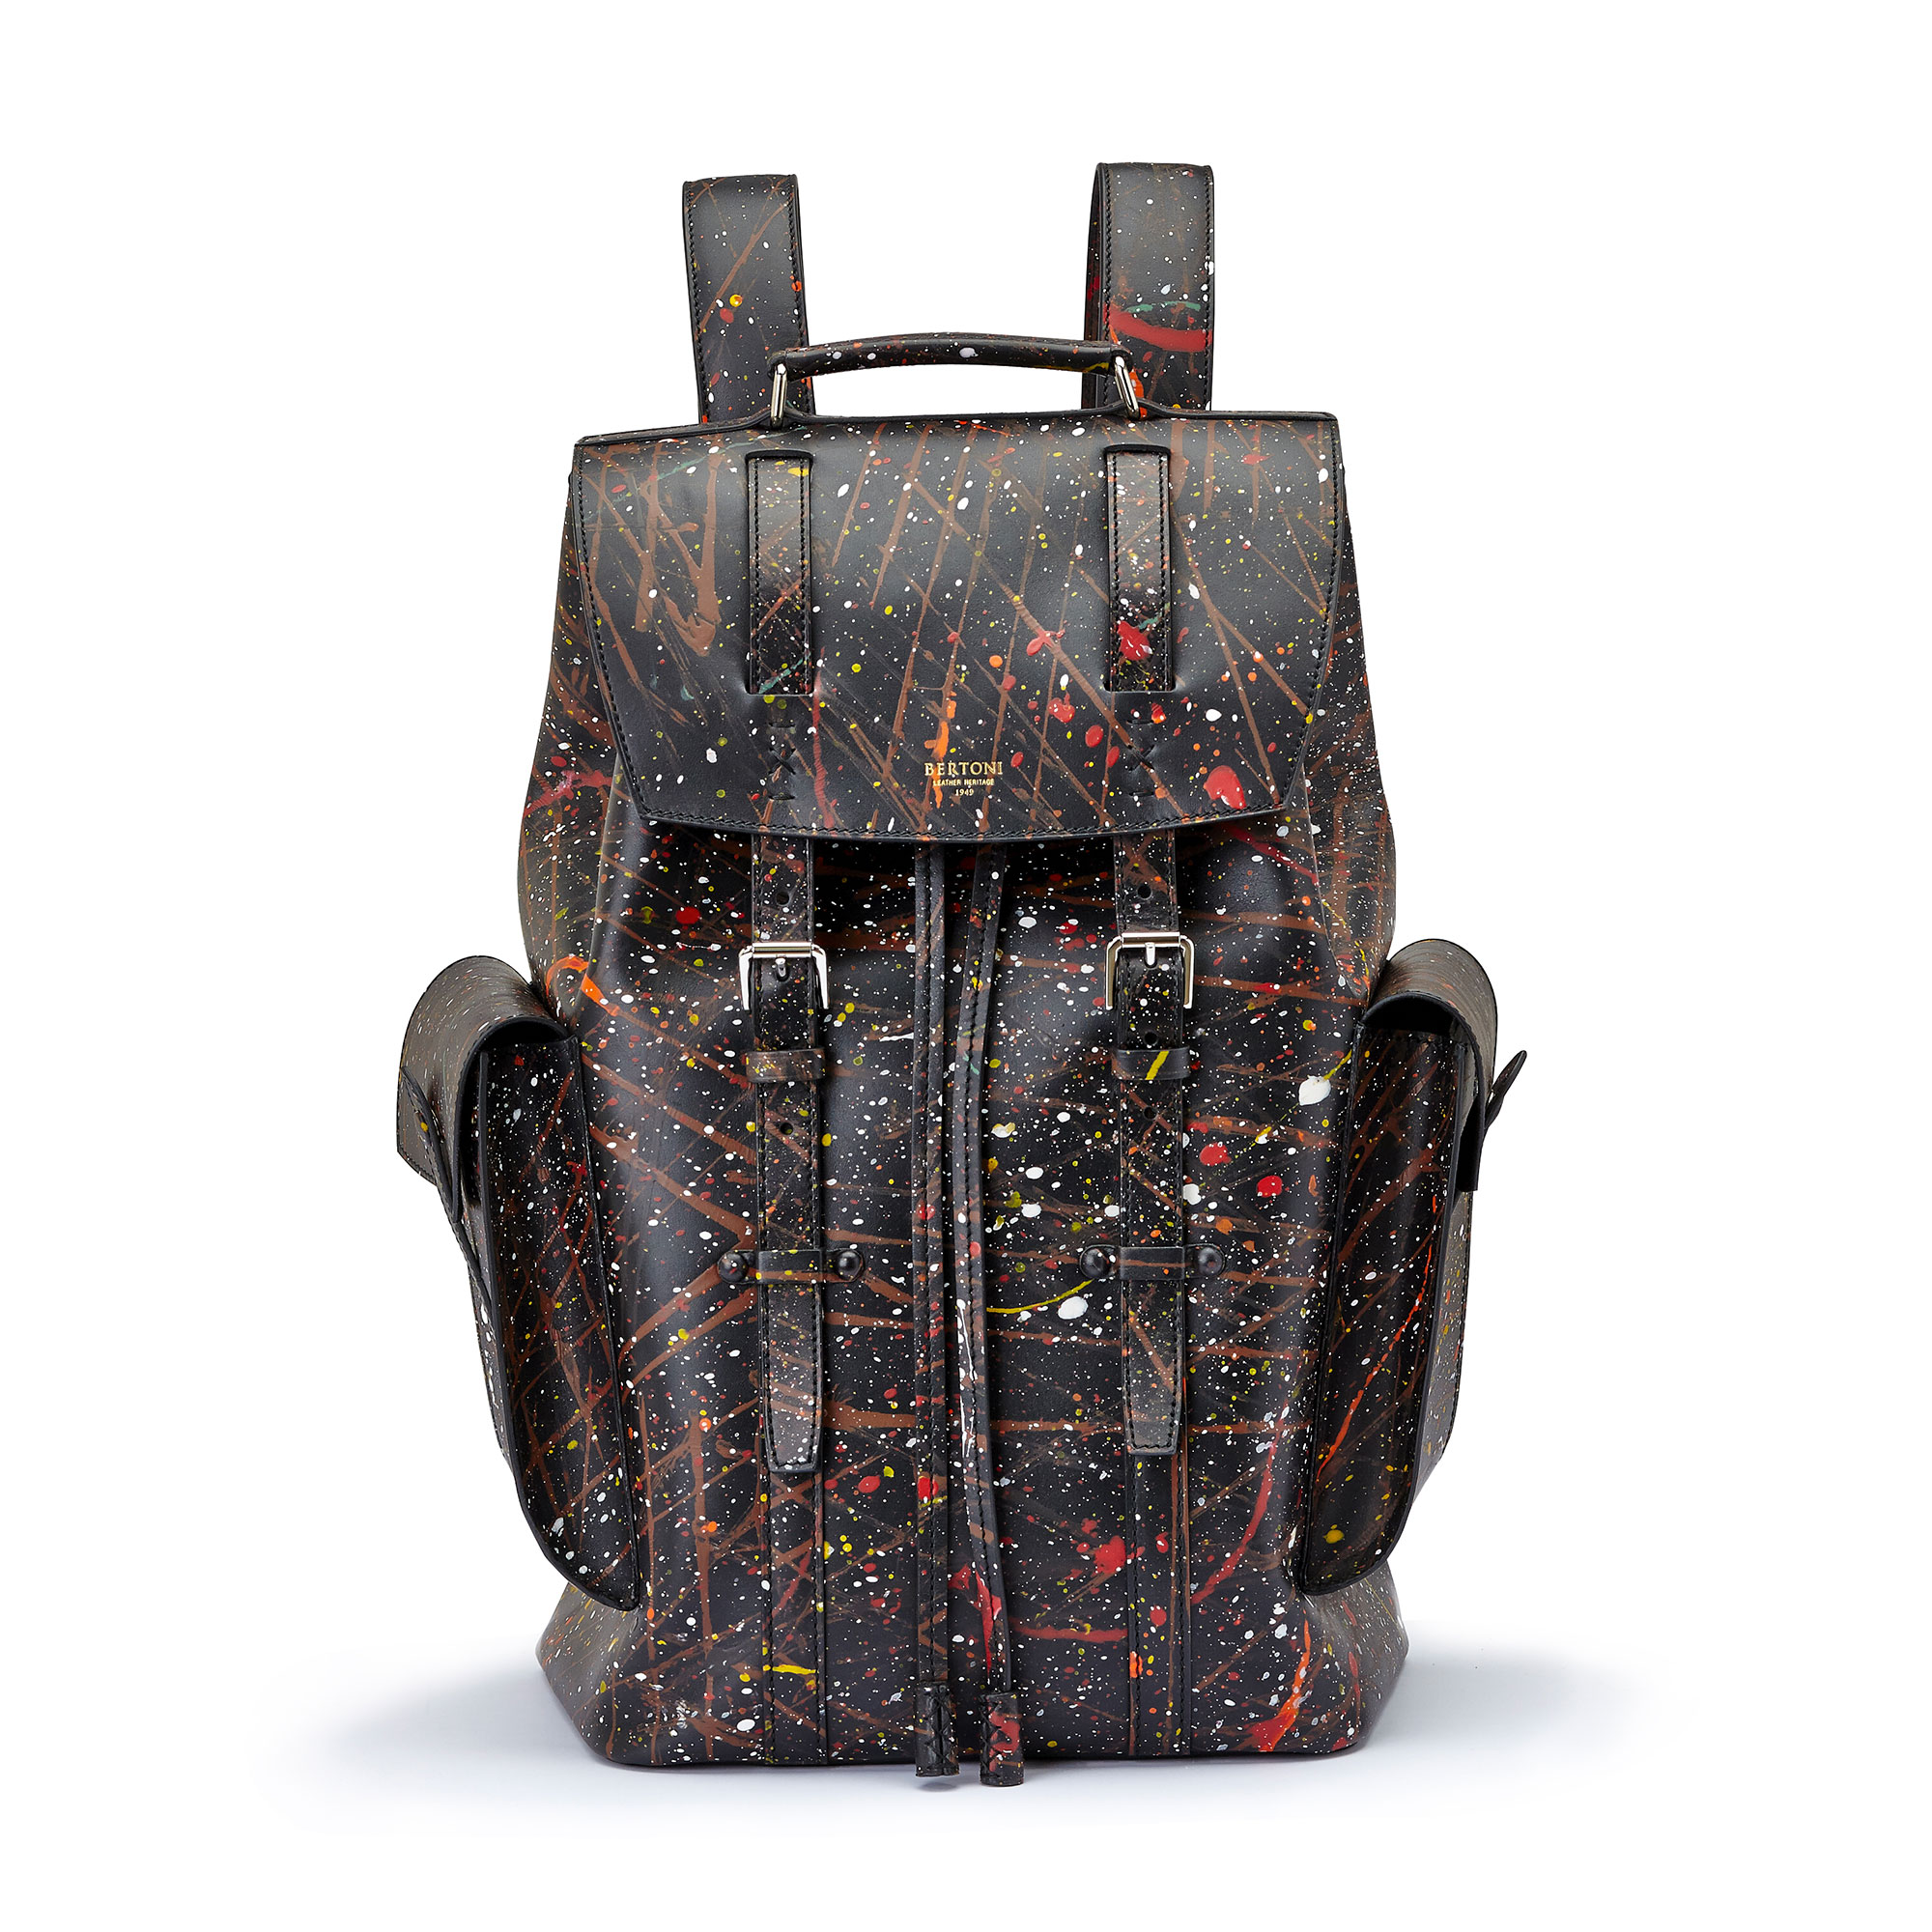 The black with edgy art french calf Traveller Backpack by Bertoni 1949 01